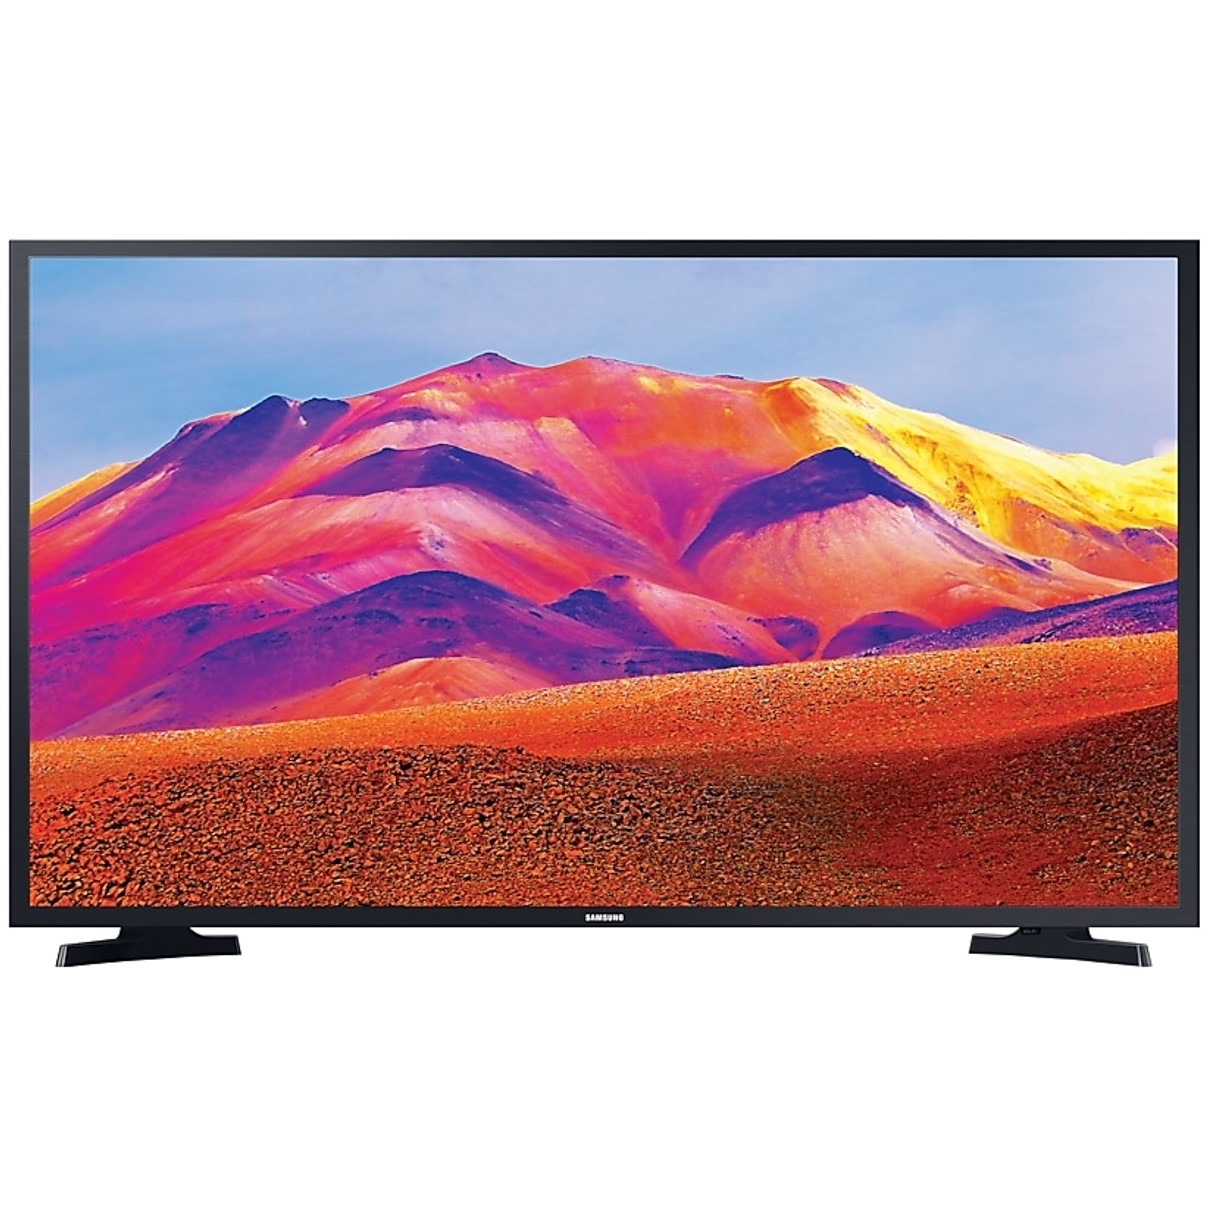 Tv samsung 32pulgadas led full hd -  ue32t5305 -  hdr -  smart tv -  2 hdmi -  1 usb -  tdt2